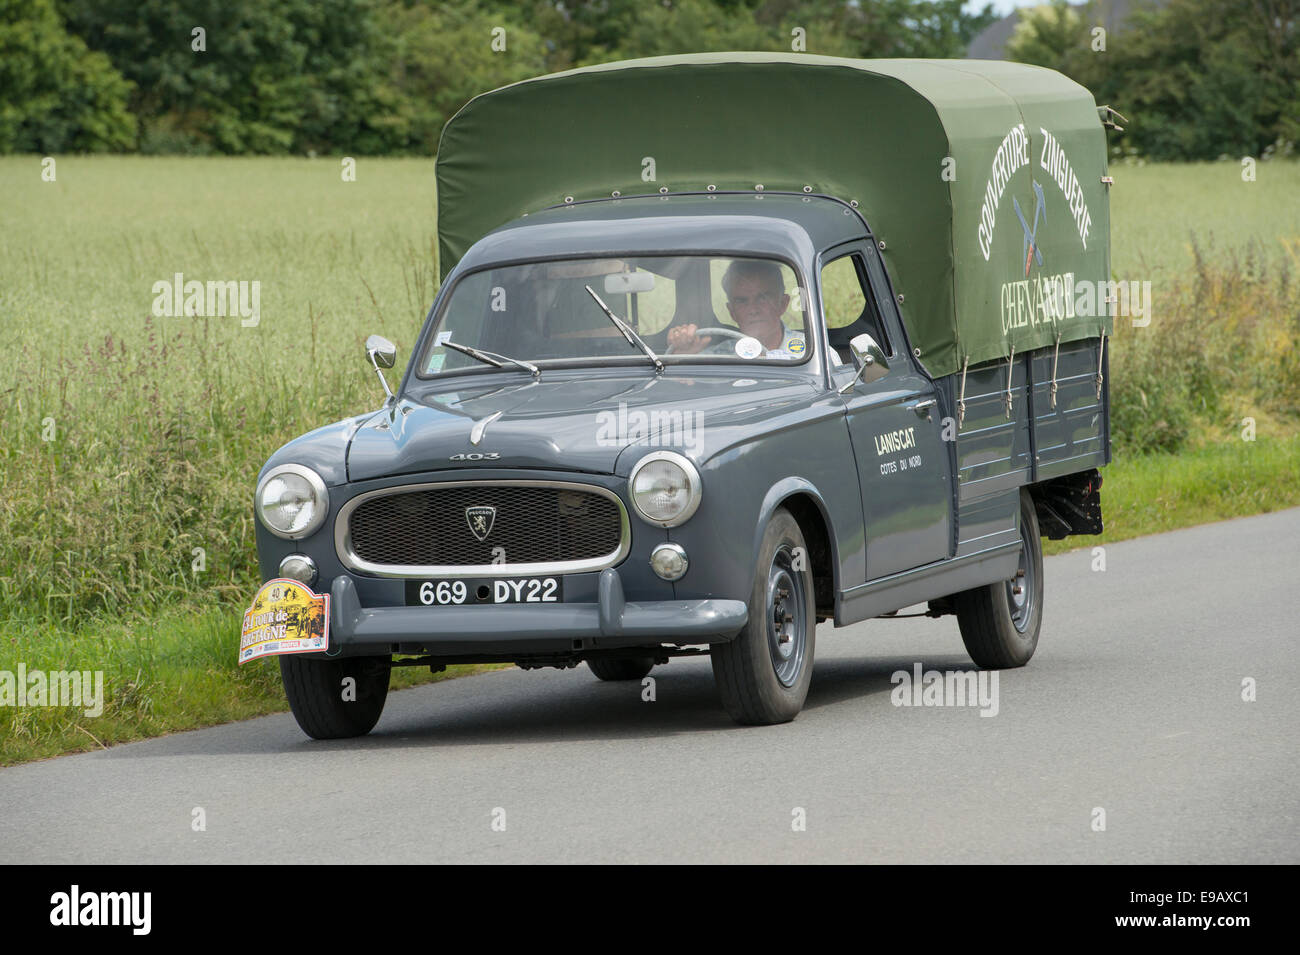 peugeot 403 camionette of 1961 in the tour de bretagne 2014 france stock photo 74613617 alamy. Black Bedroom Furniture Sets. Home Design Ideas